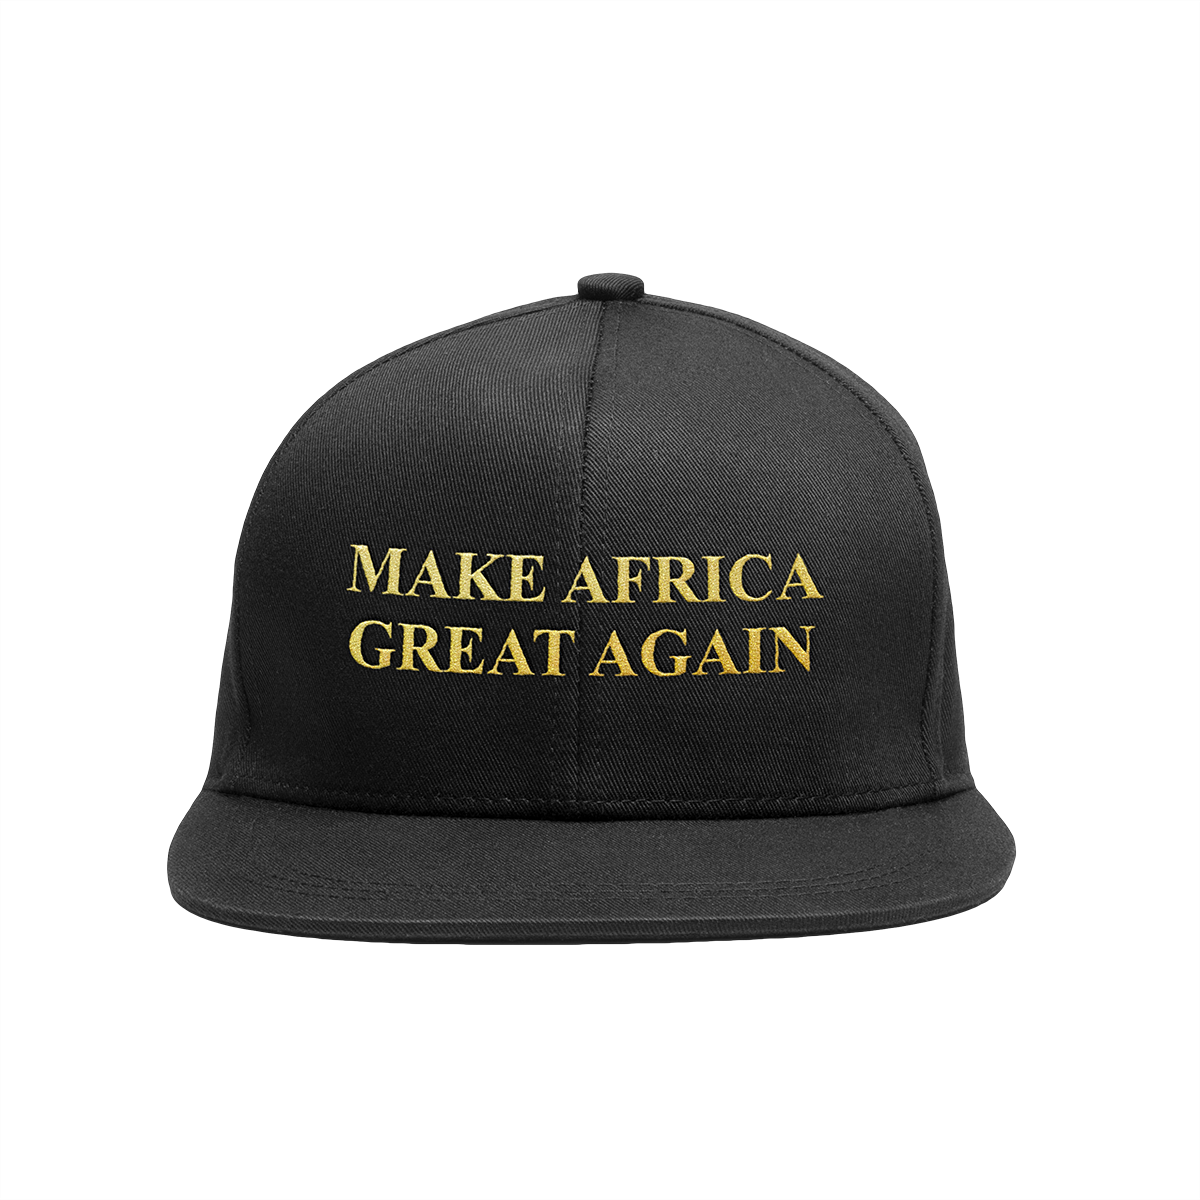 Make Africa Great Again Snapback